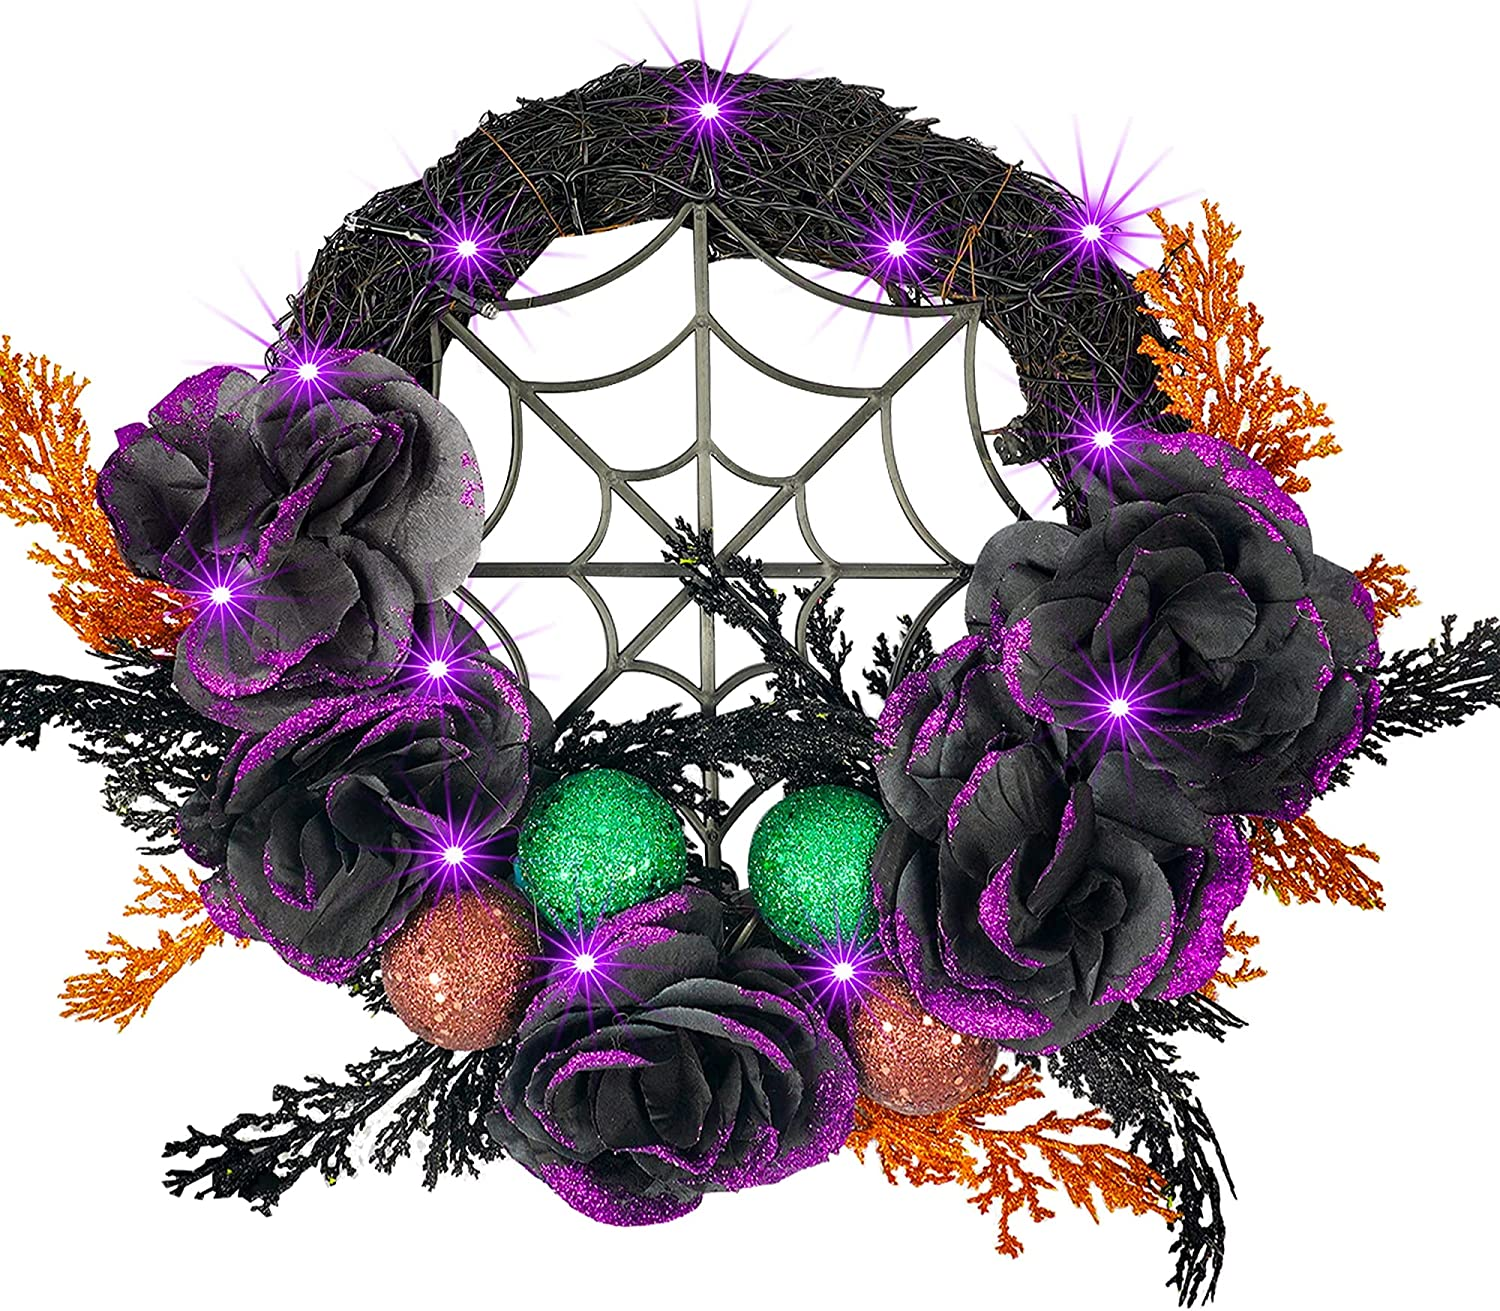 NEROSUN Halloween Wreath for Front Door Decor, 20 LED Light Up Halloween Decorations with Artificial Rose and Ball Purple Lights for Outside Decor